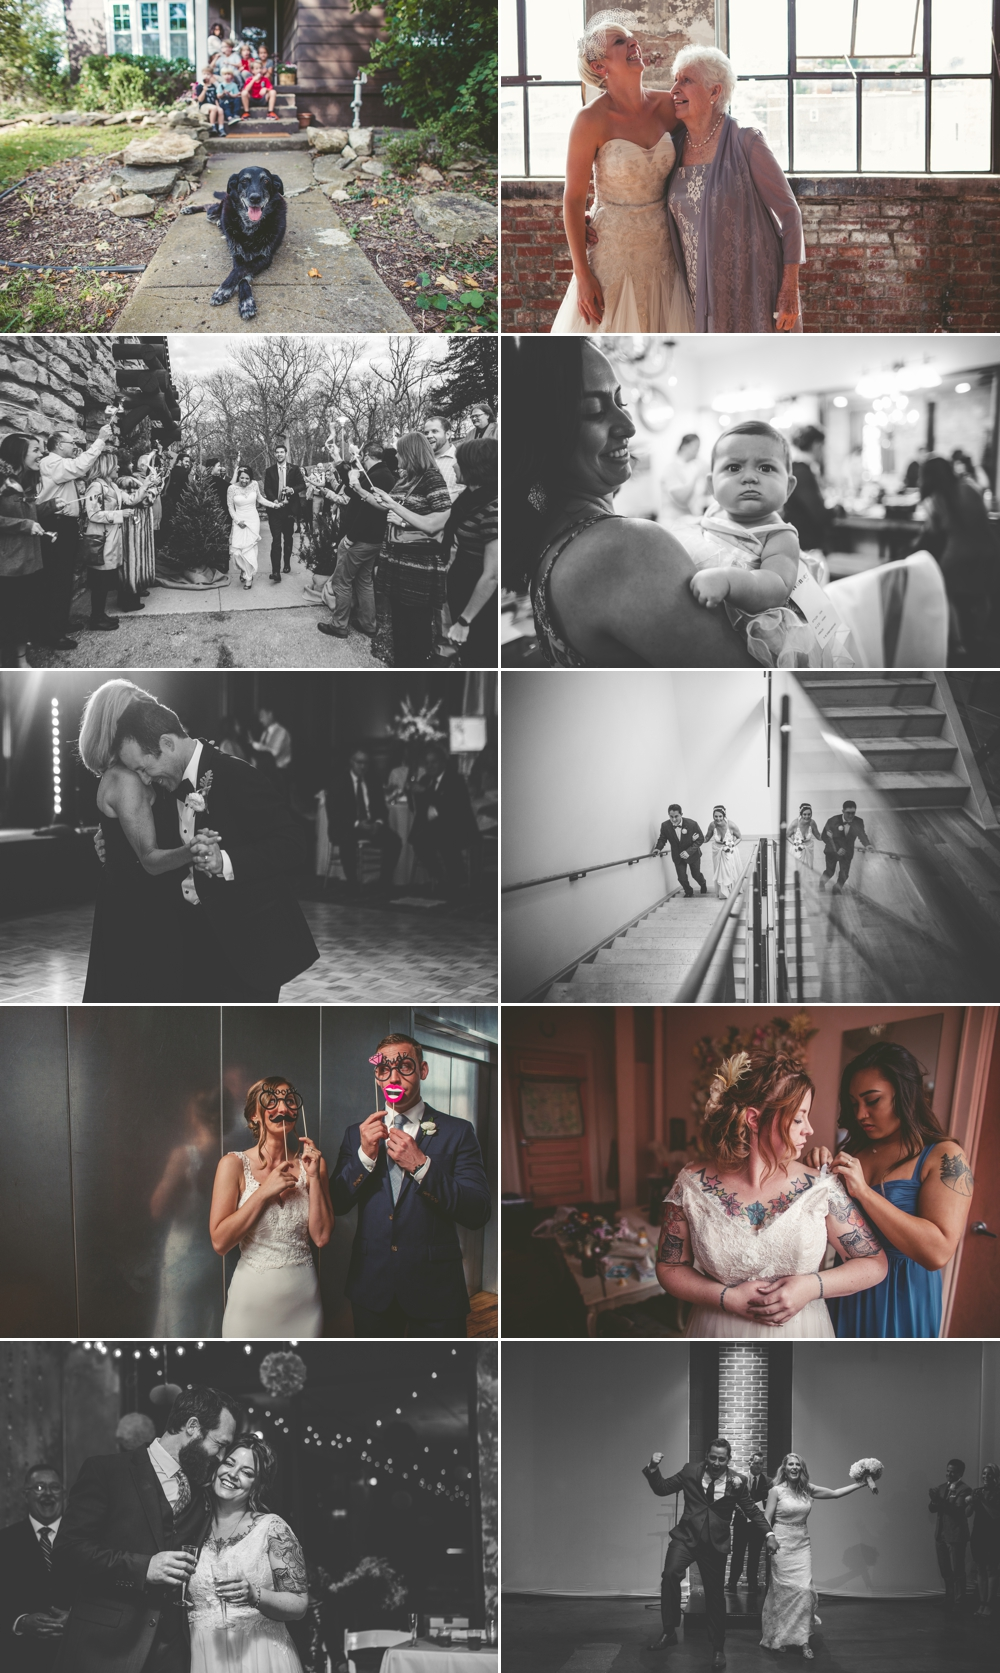 jason_domingues_photography_best_kansas_city_wedding_photographer_kc_weddings_0010.JPG